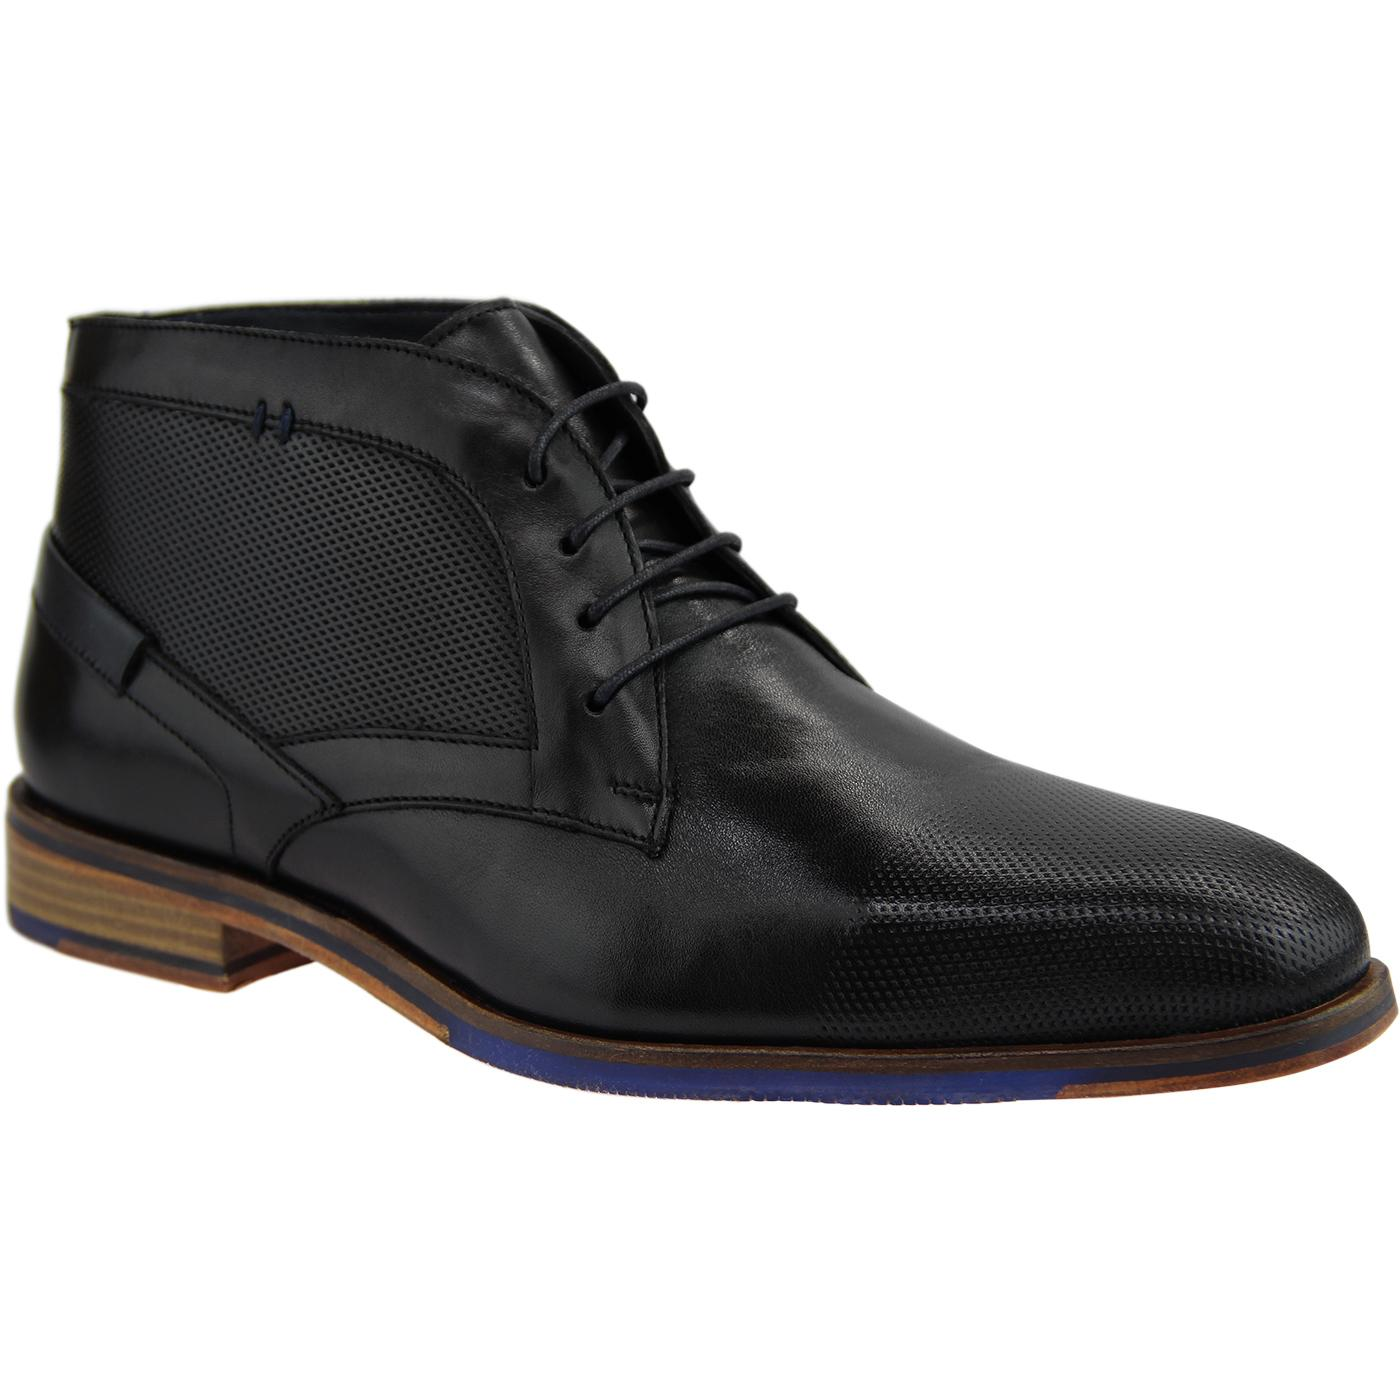 Dalton PAOLO VANDINI Mod Textured Worker Boots (B)